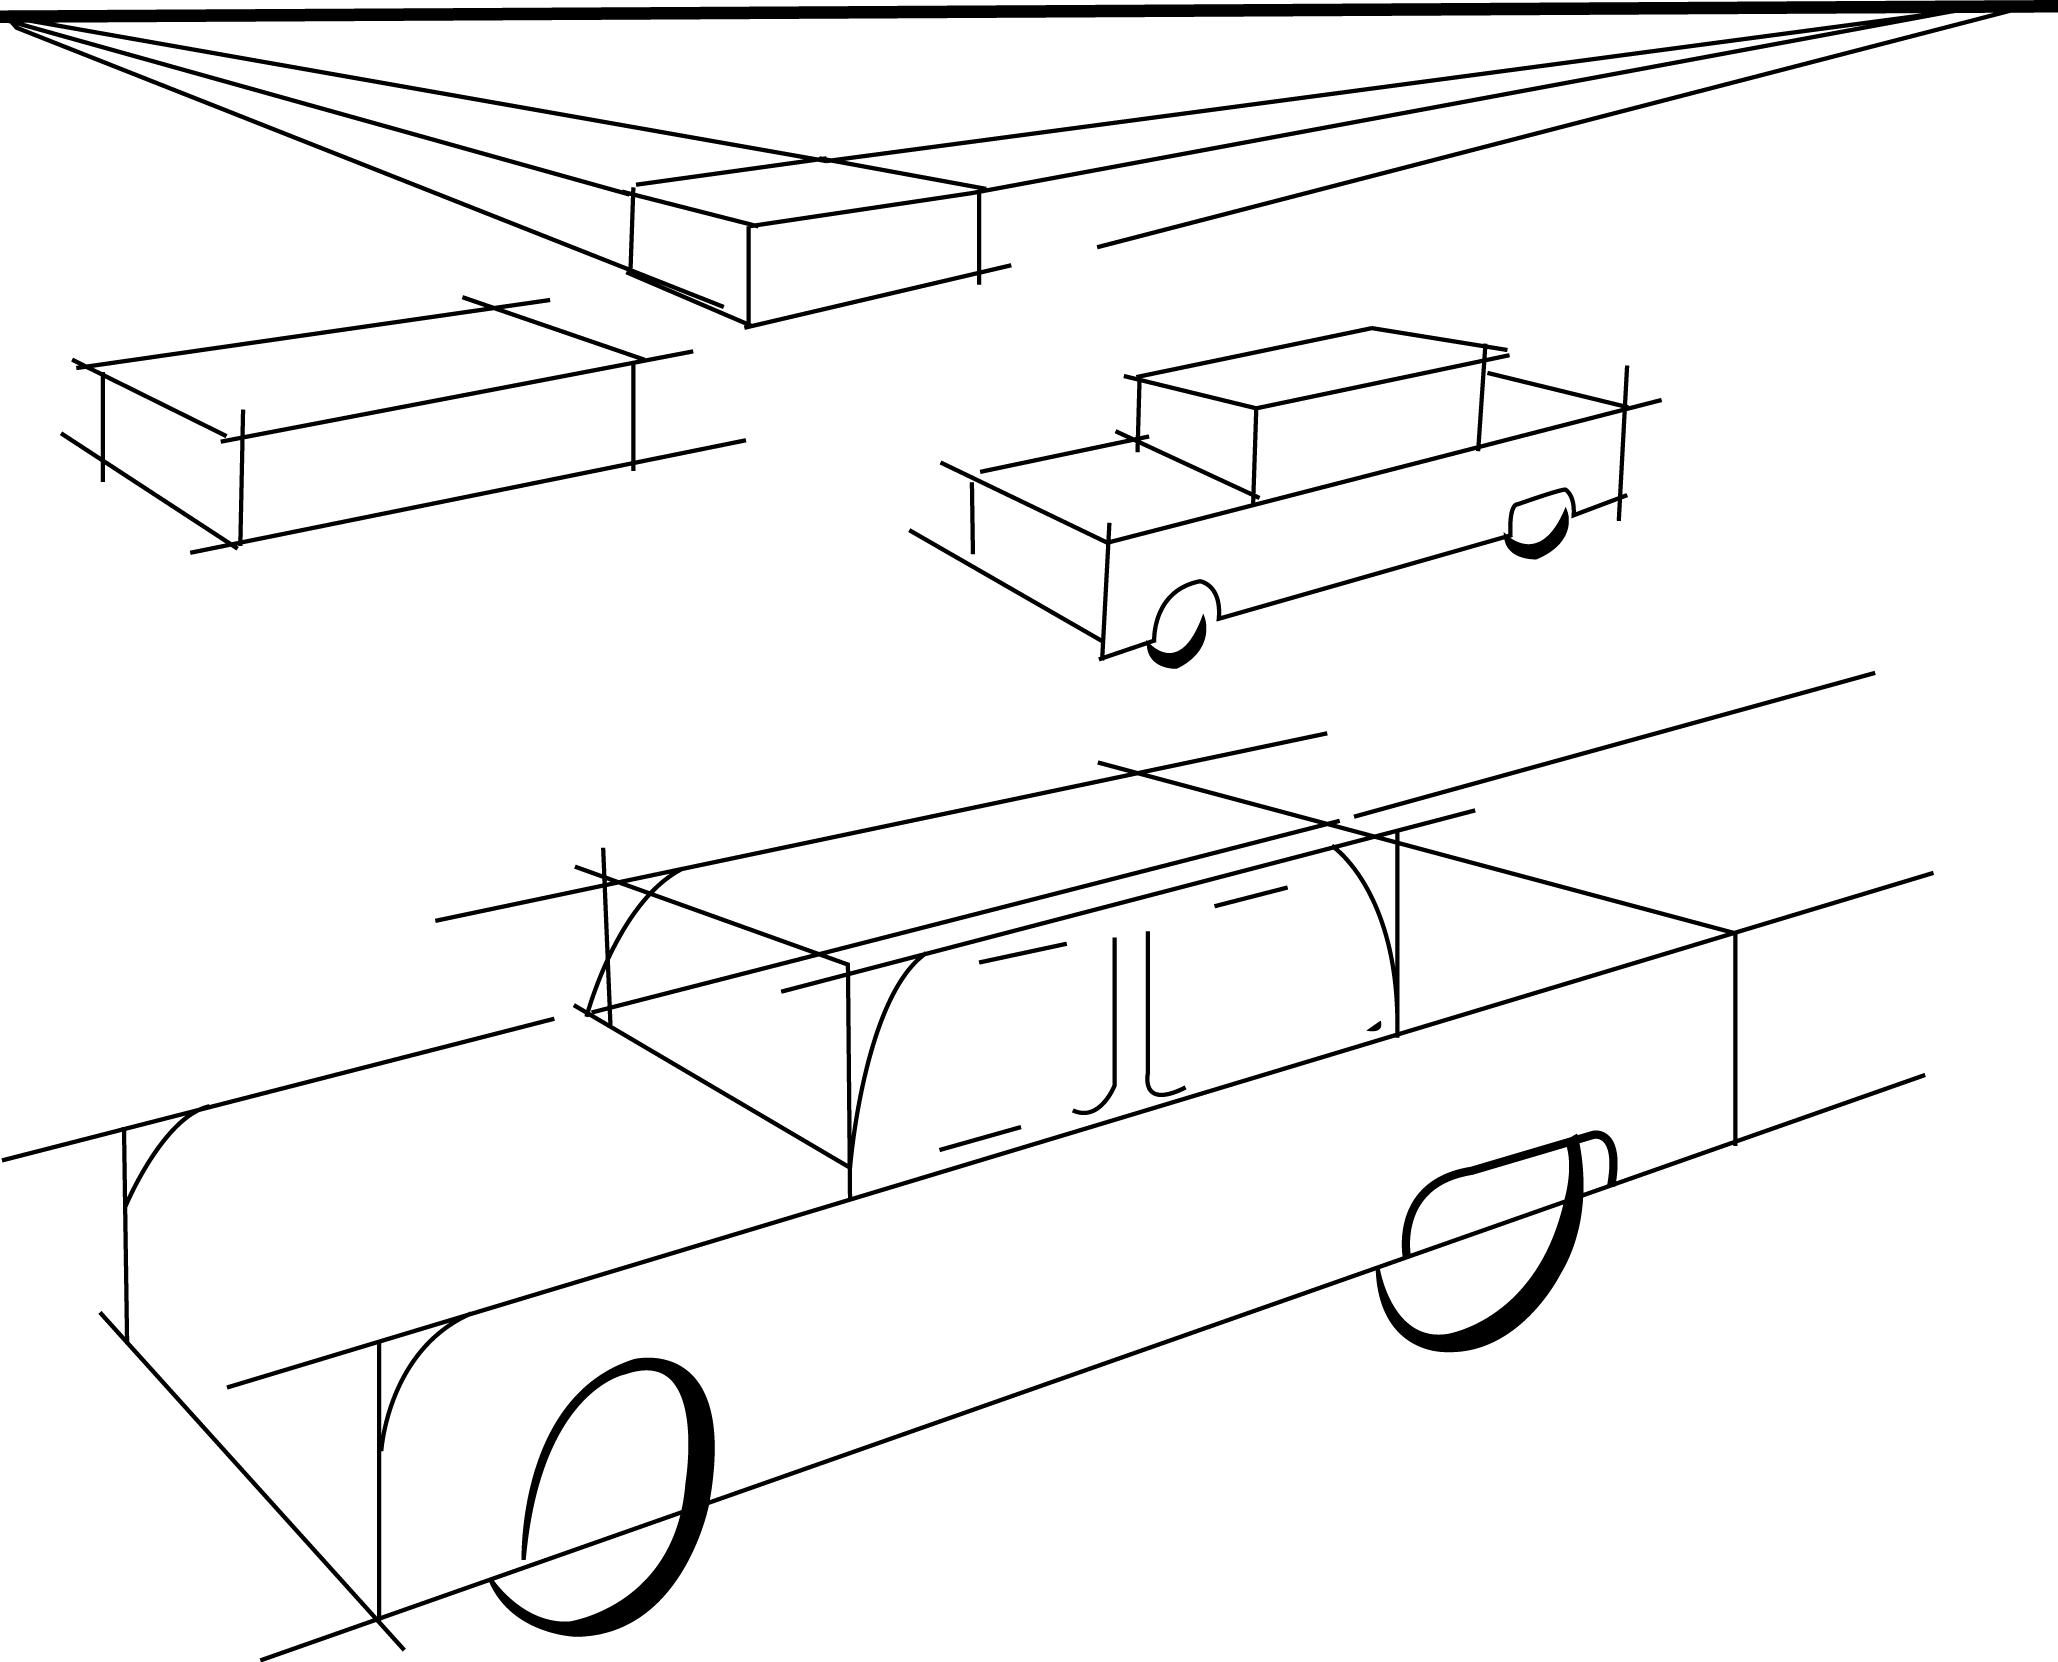 Car Front View Drawing At Getdrawings